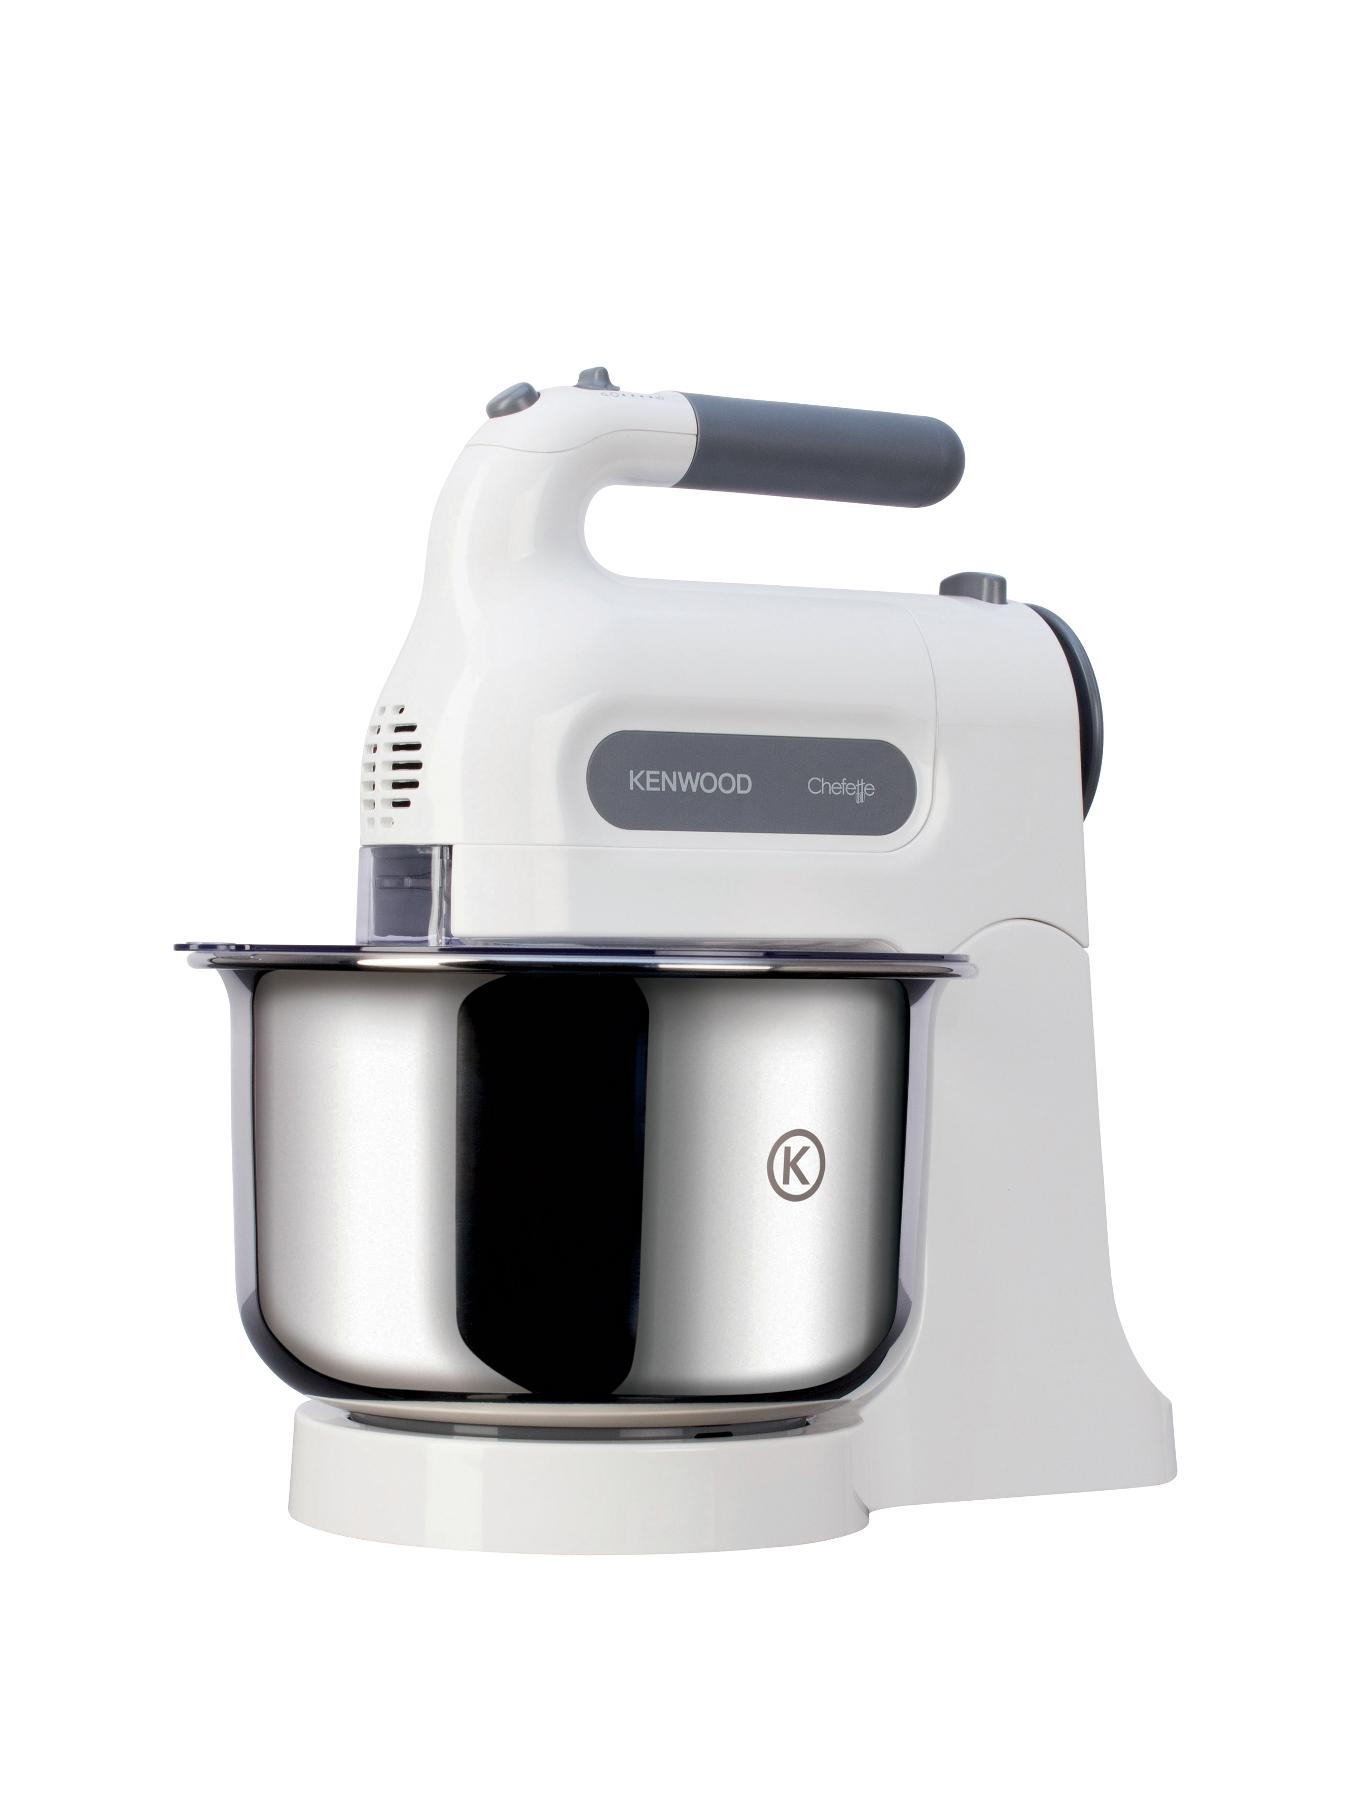 Chefette HM680 Hand and Stand Mixer